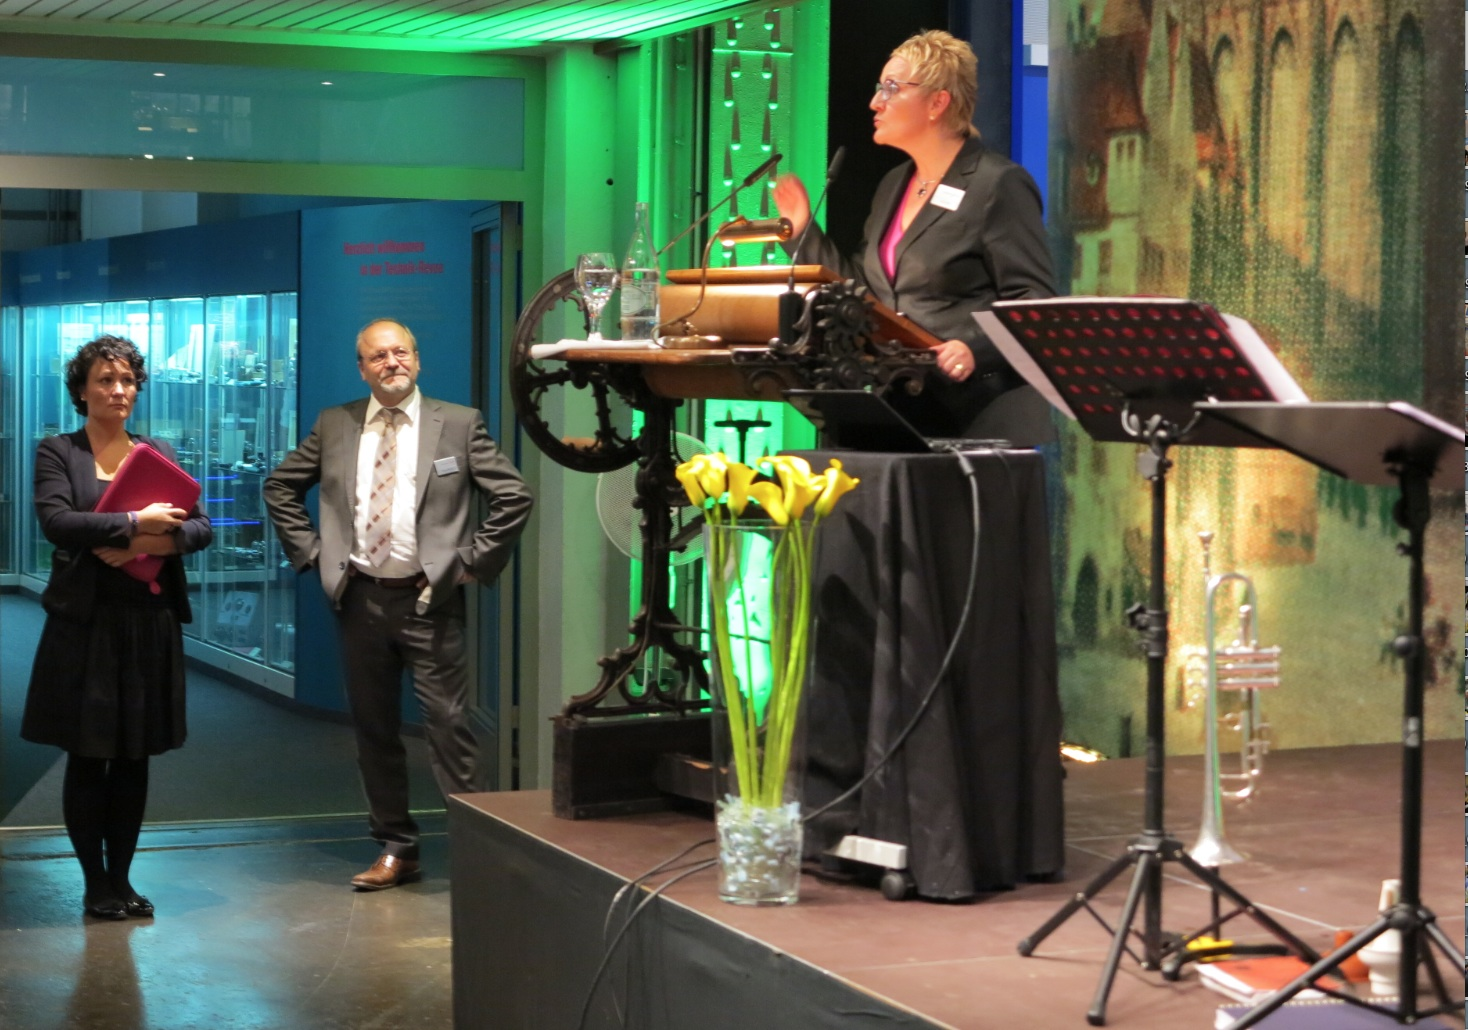 Petra Wolf, Member of the Management Board, addressing the visitors at the Museum Reception and Claus Rättich, Member of the Management Board,